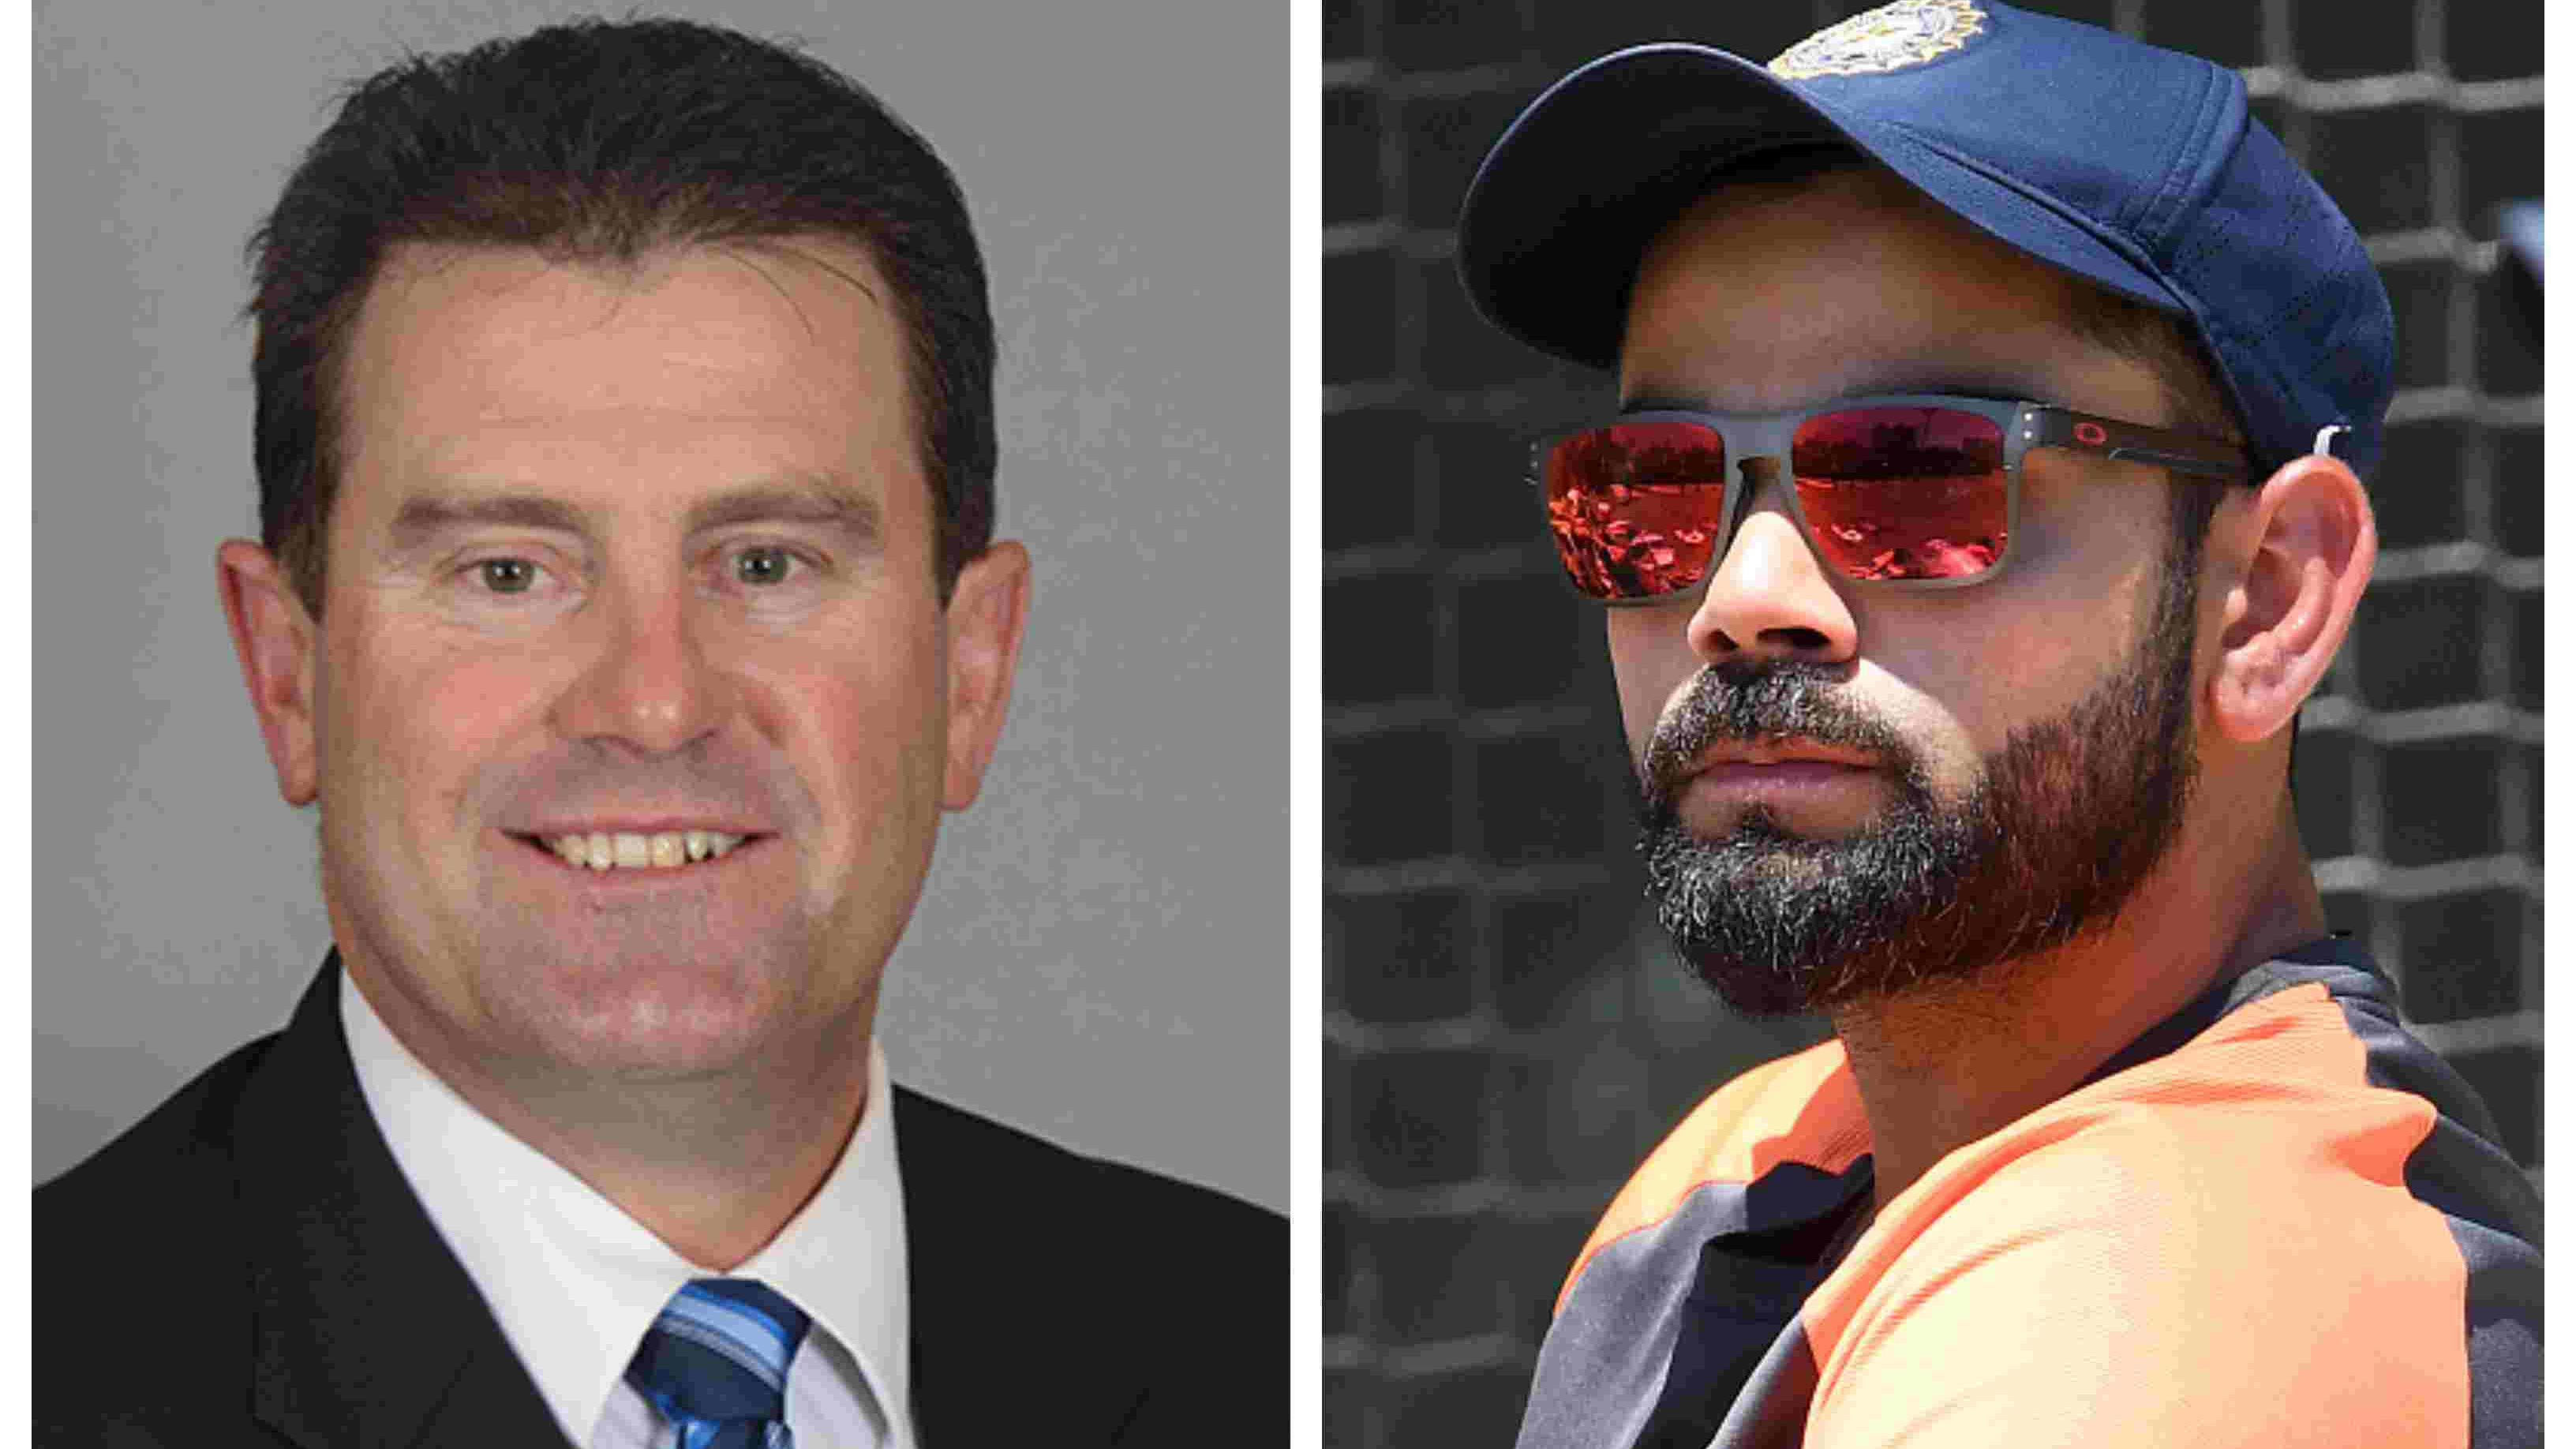 AUS v IND 2018-19: Mark Taylor in awe of Virat Kohli's off-field conduct